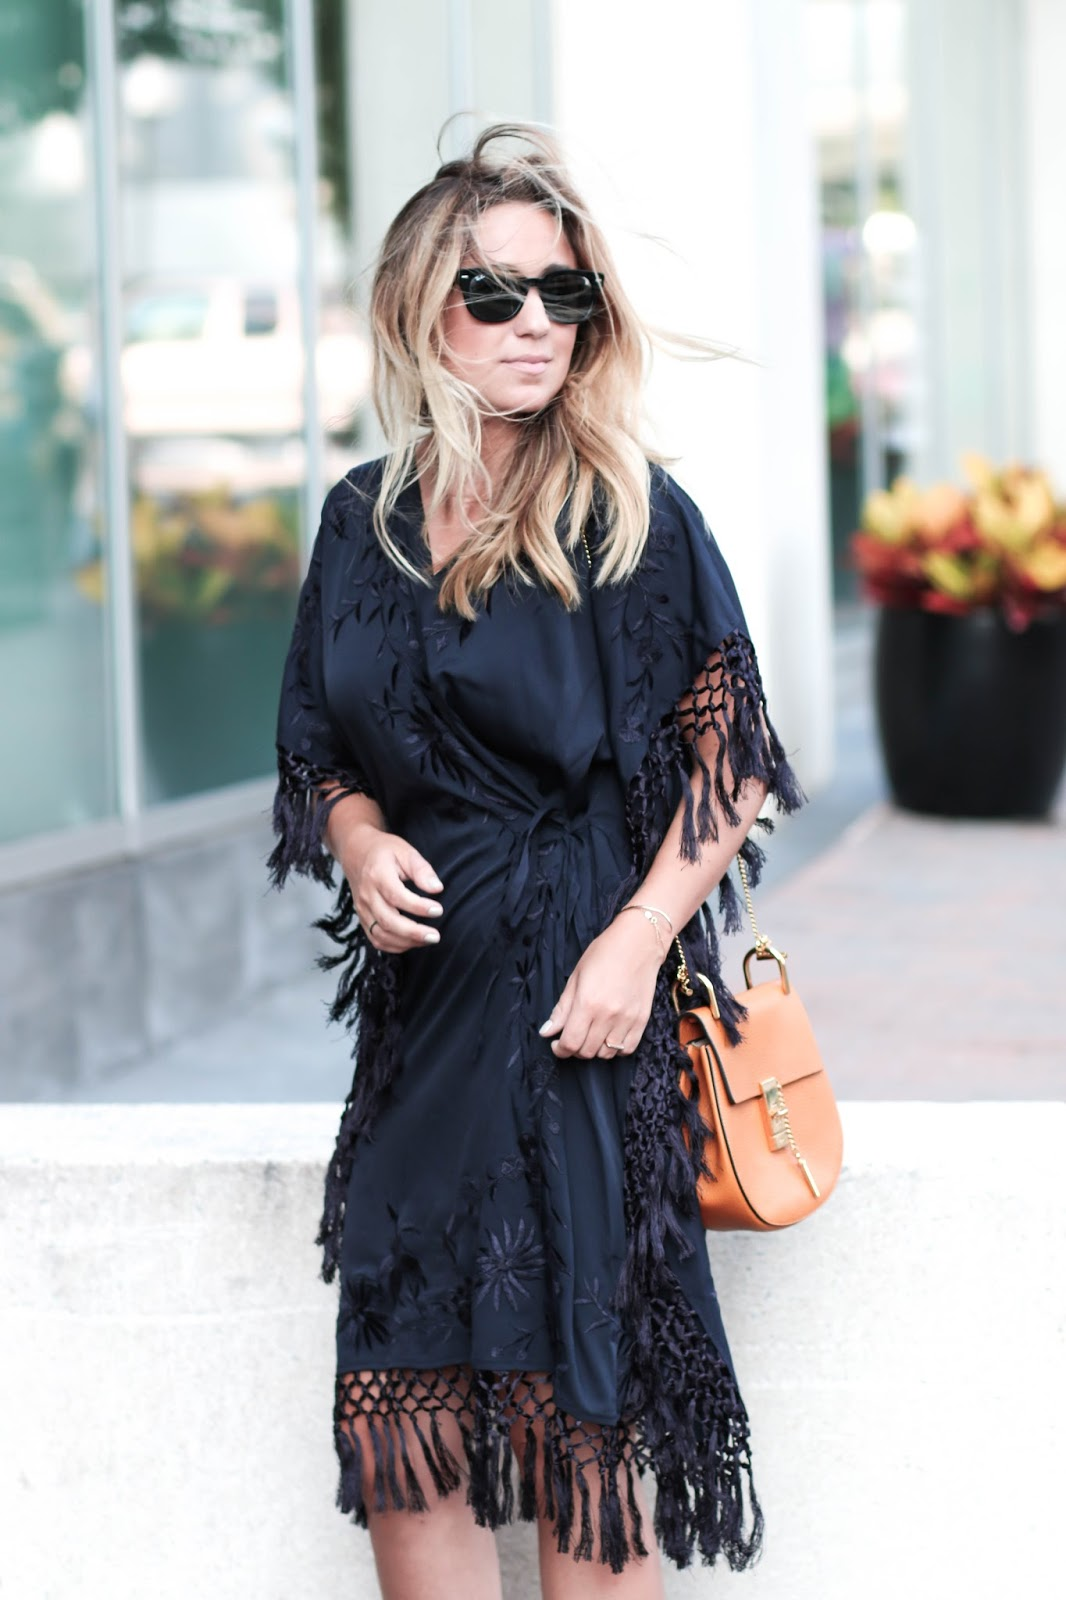 fringe, french connection, dress, black, summer, outfit, style, prada, heels, rayban, sunglasses, chloe, bag, borrow, style, blog, dc, fashion